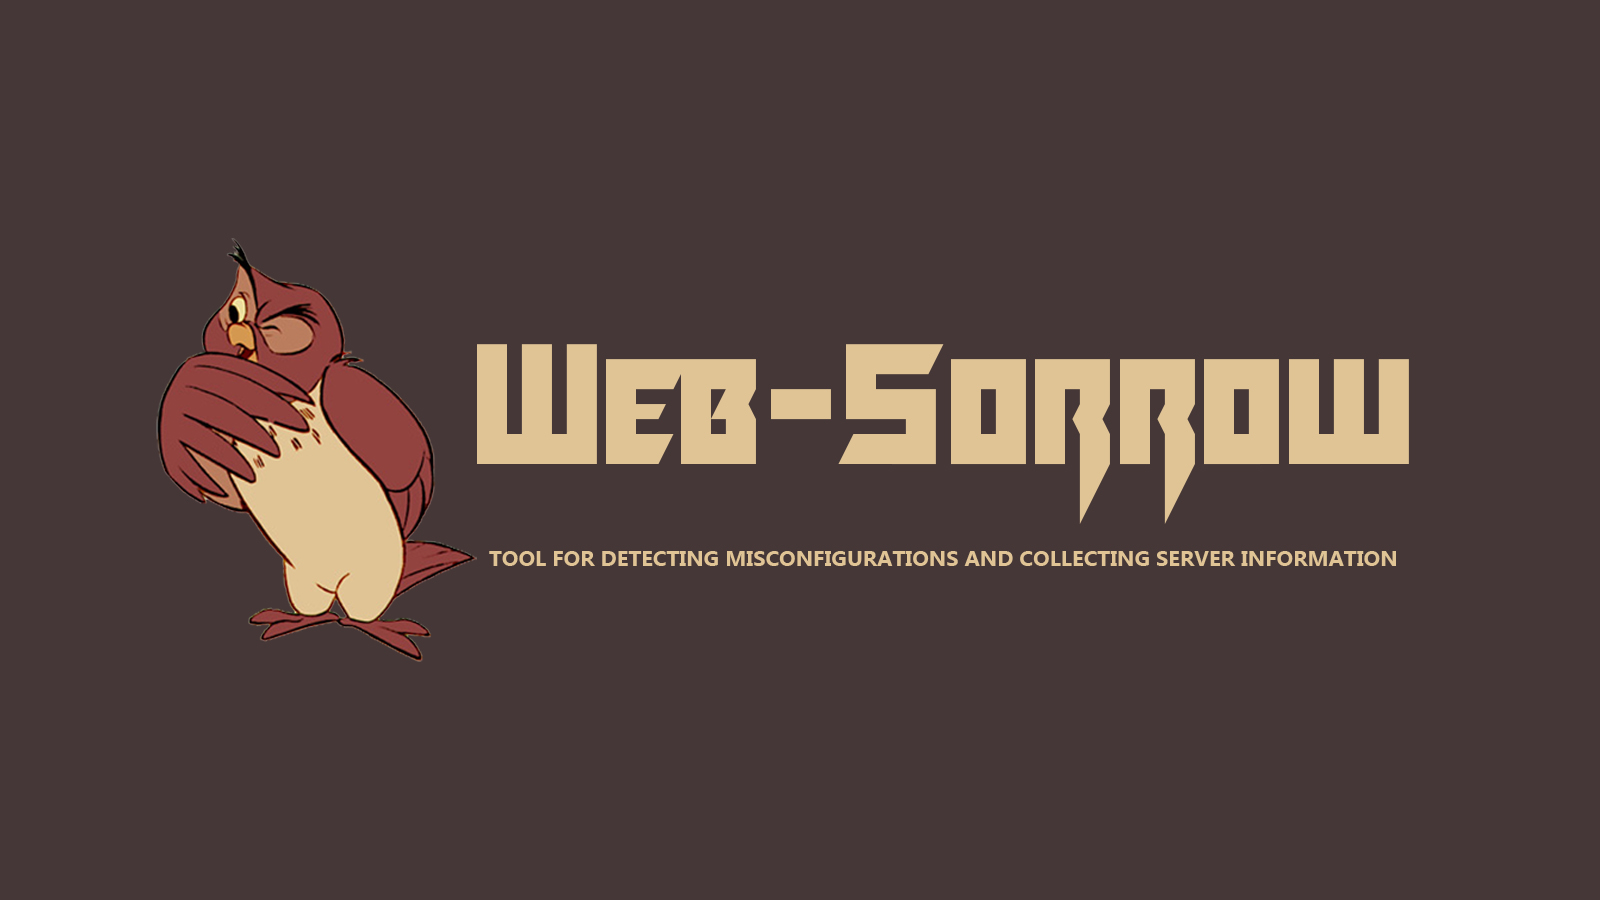 Web-Sorrow - Web server scanning Tool